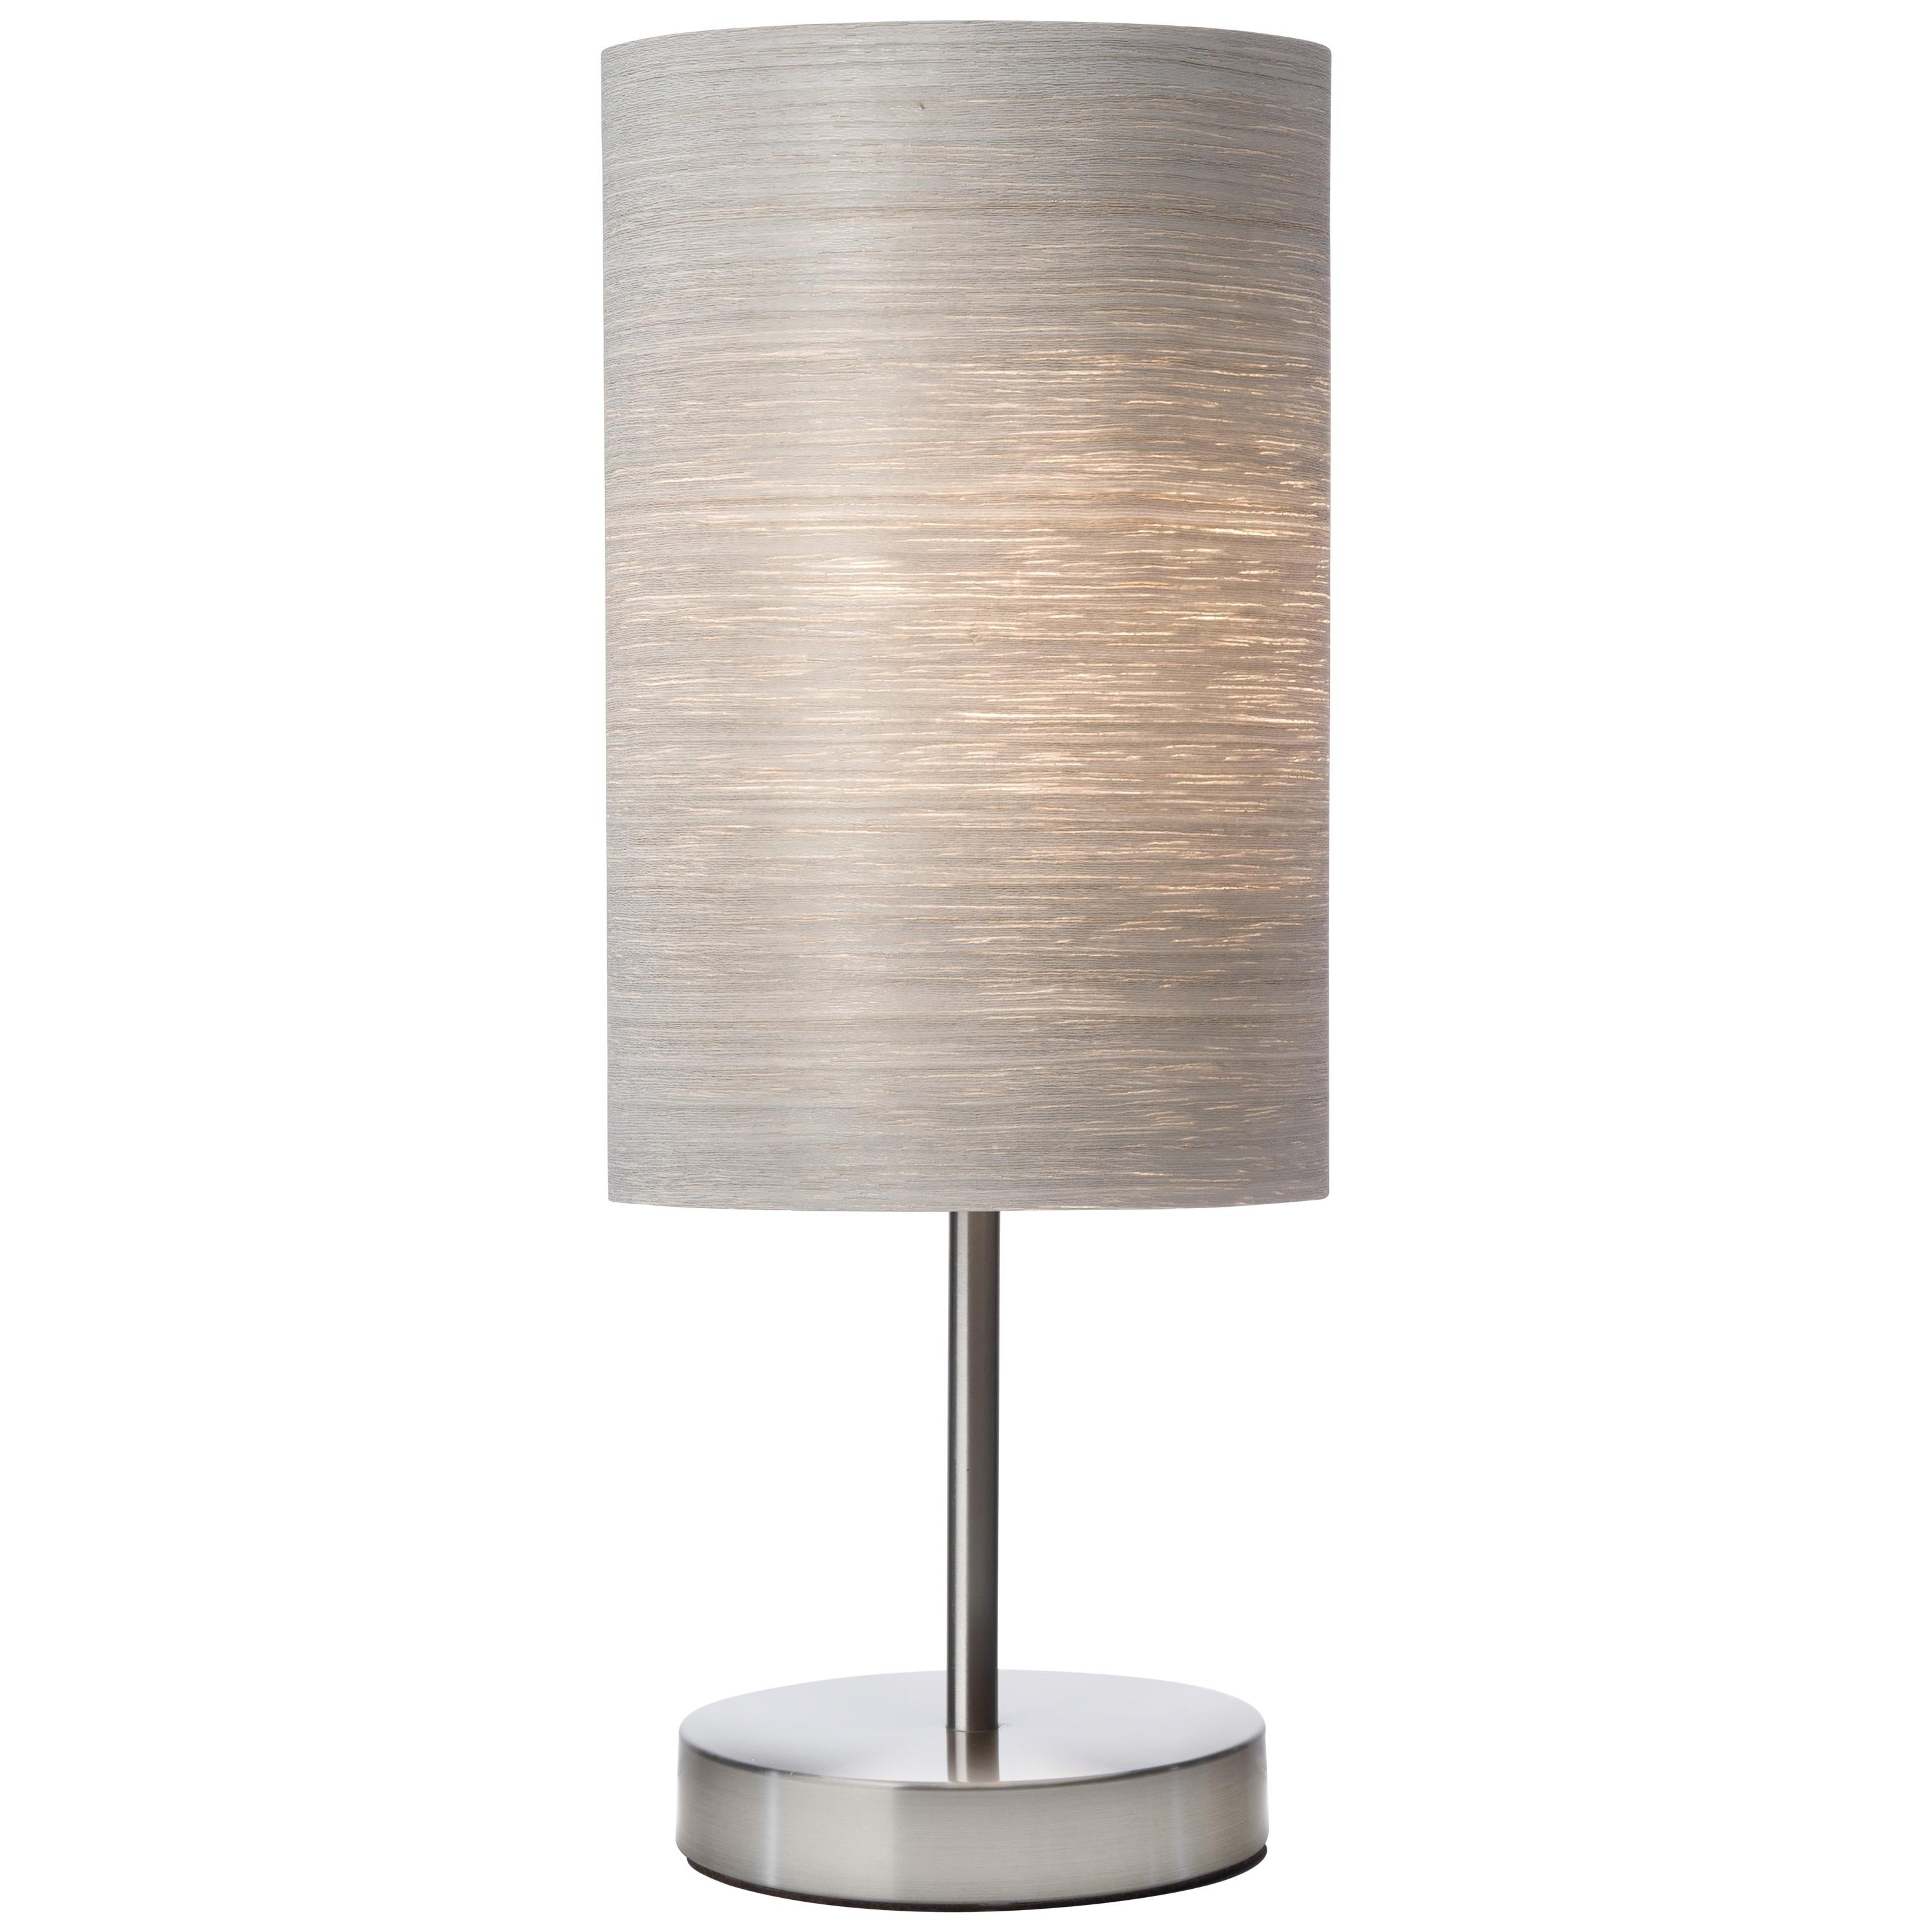 Mid-Century Modern gray wood veneer table lamp with brushed steel stand